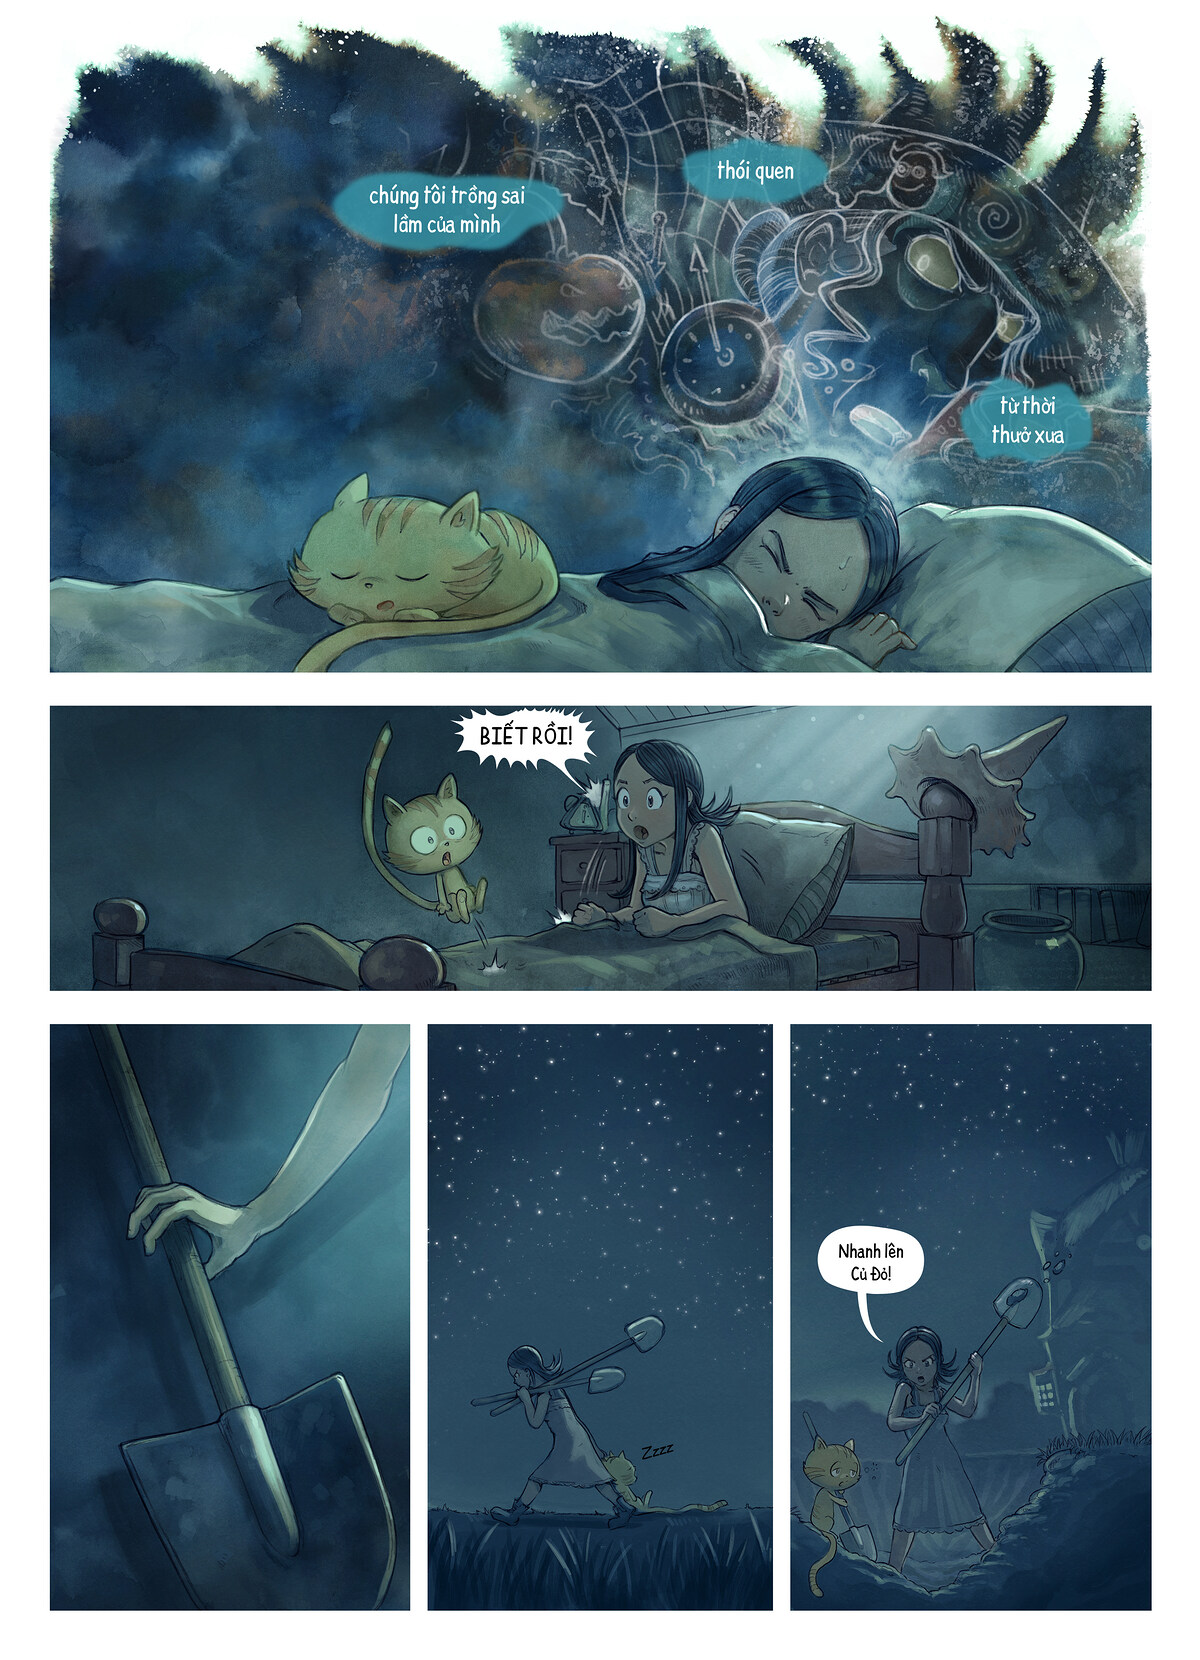 A webcomic page of Pepper&Carrot, Tập 19 [vi], trang 3